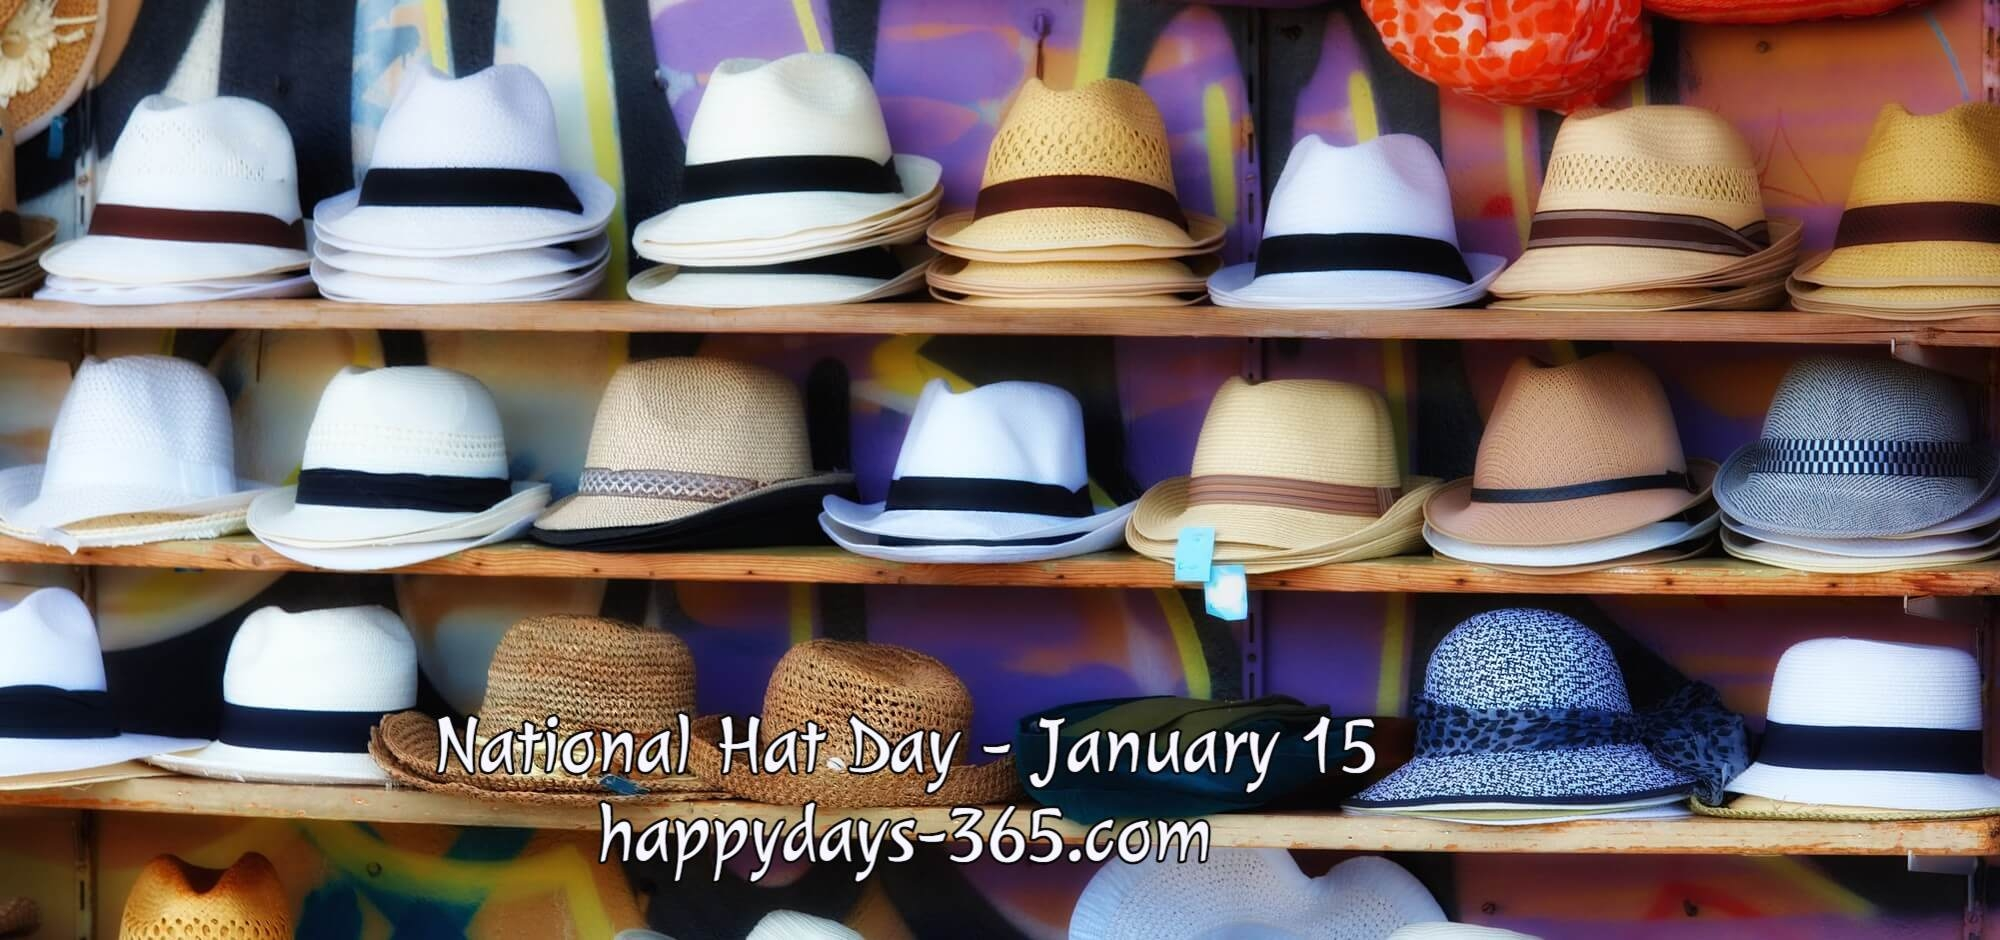 National Hat Day January 15 2019 Happy Days 365